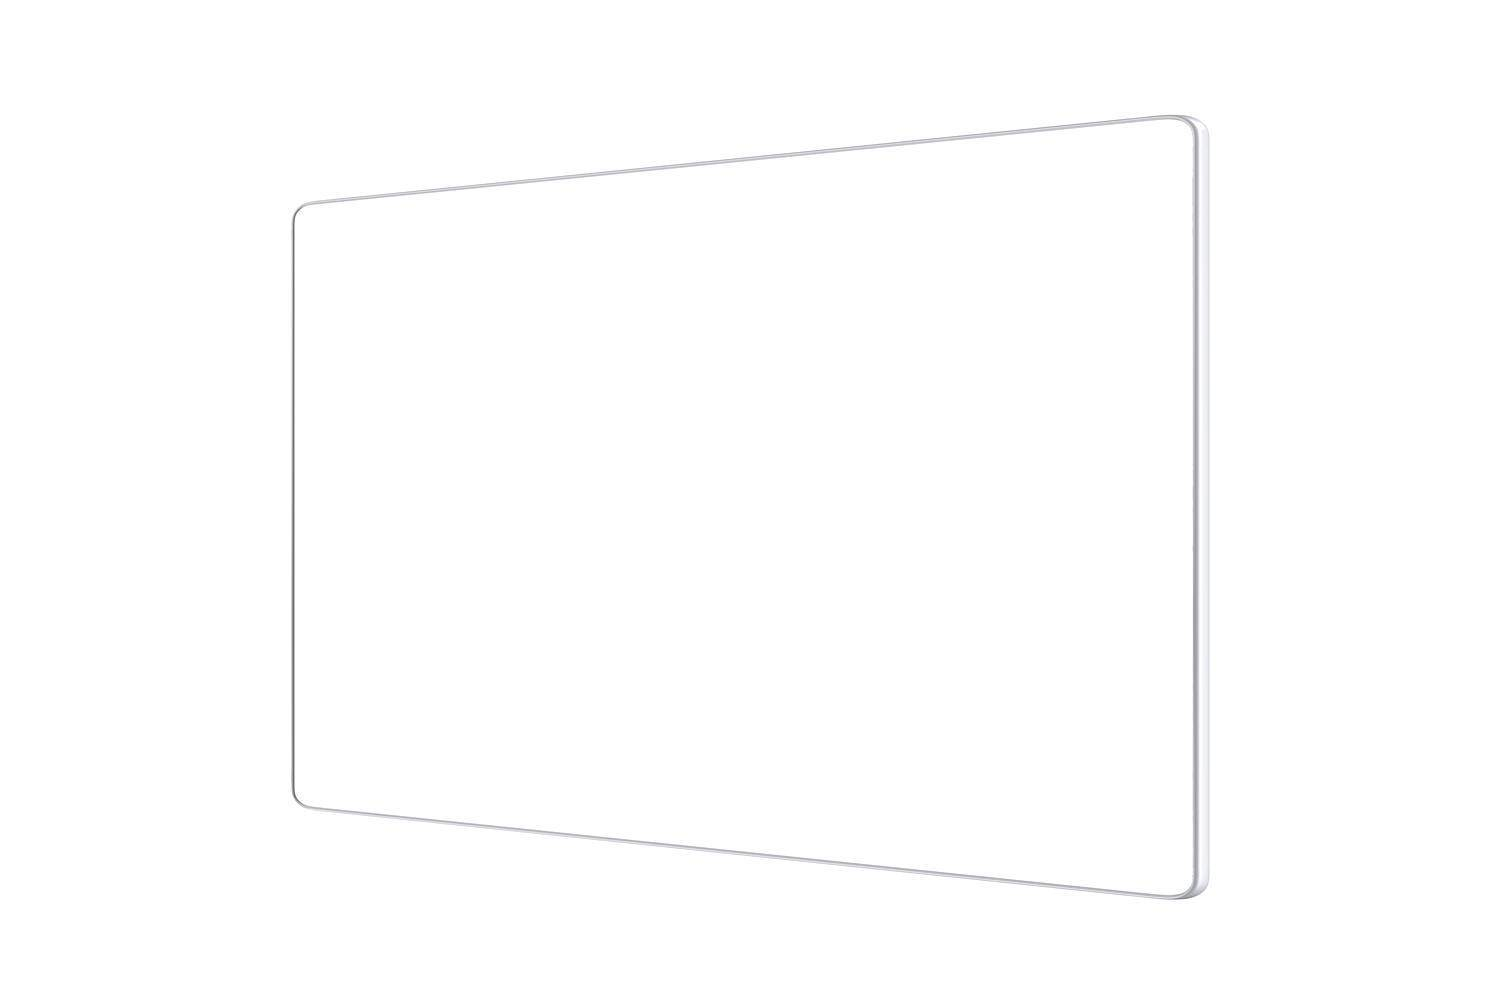 LED panel 60x120 backlit panel 600x1200 backlight ultra-thin led flat panel light dimming 2